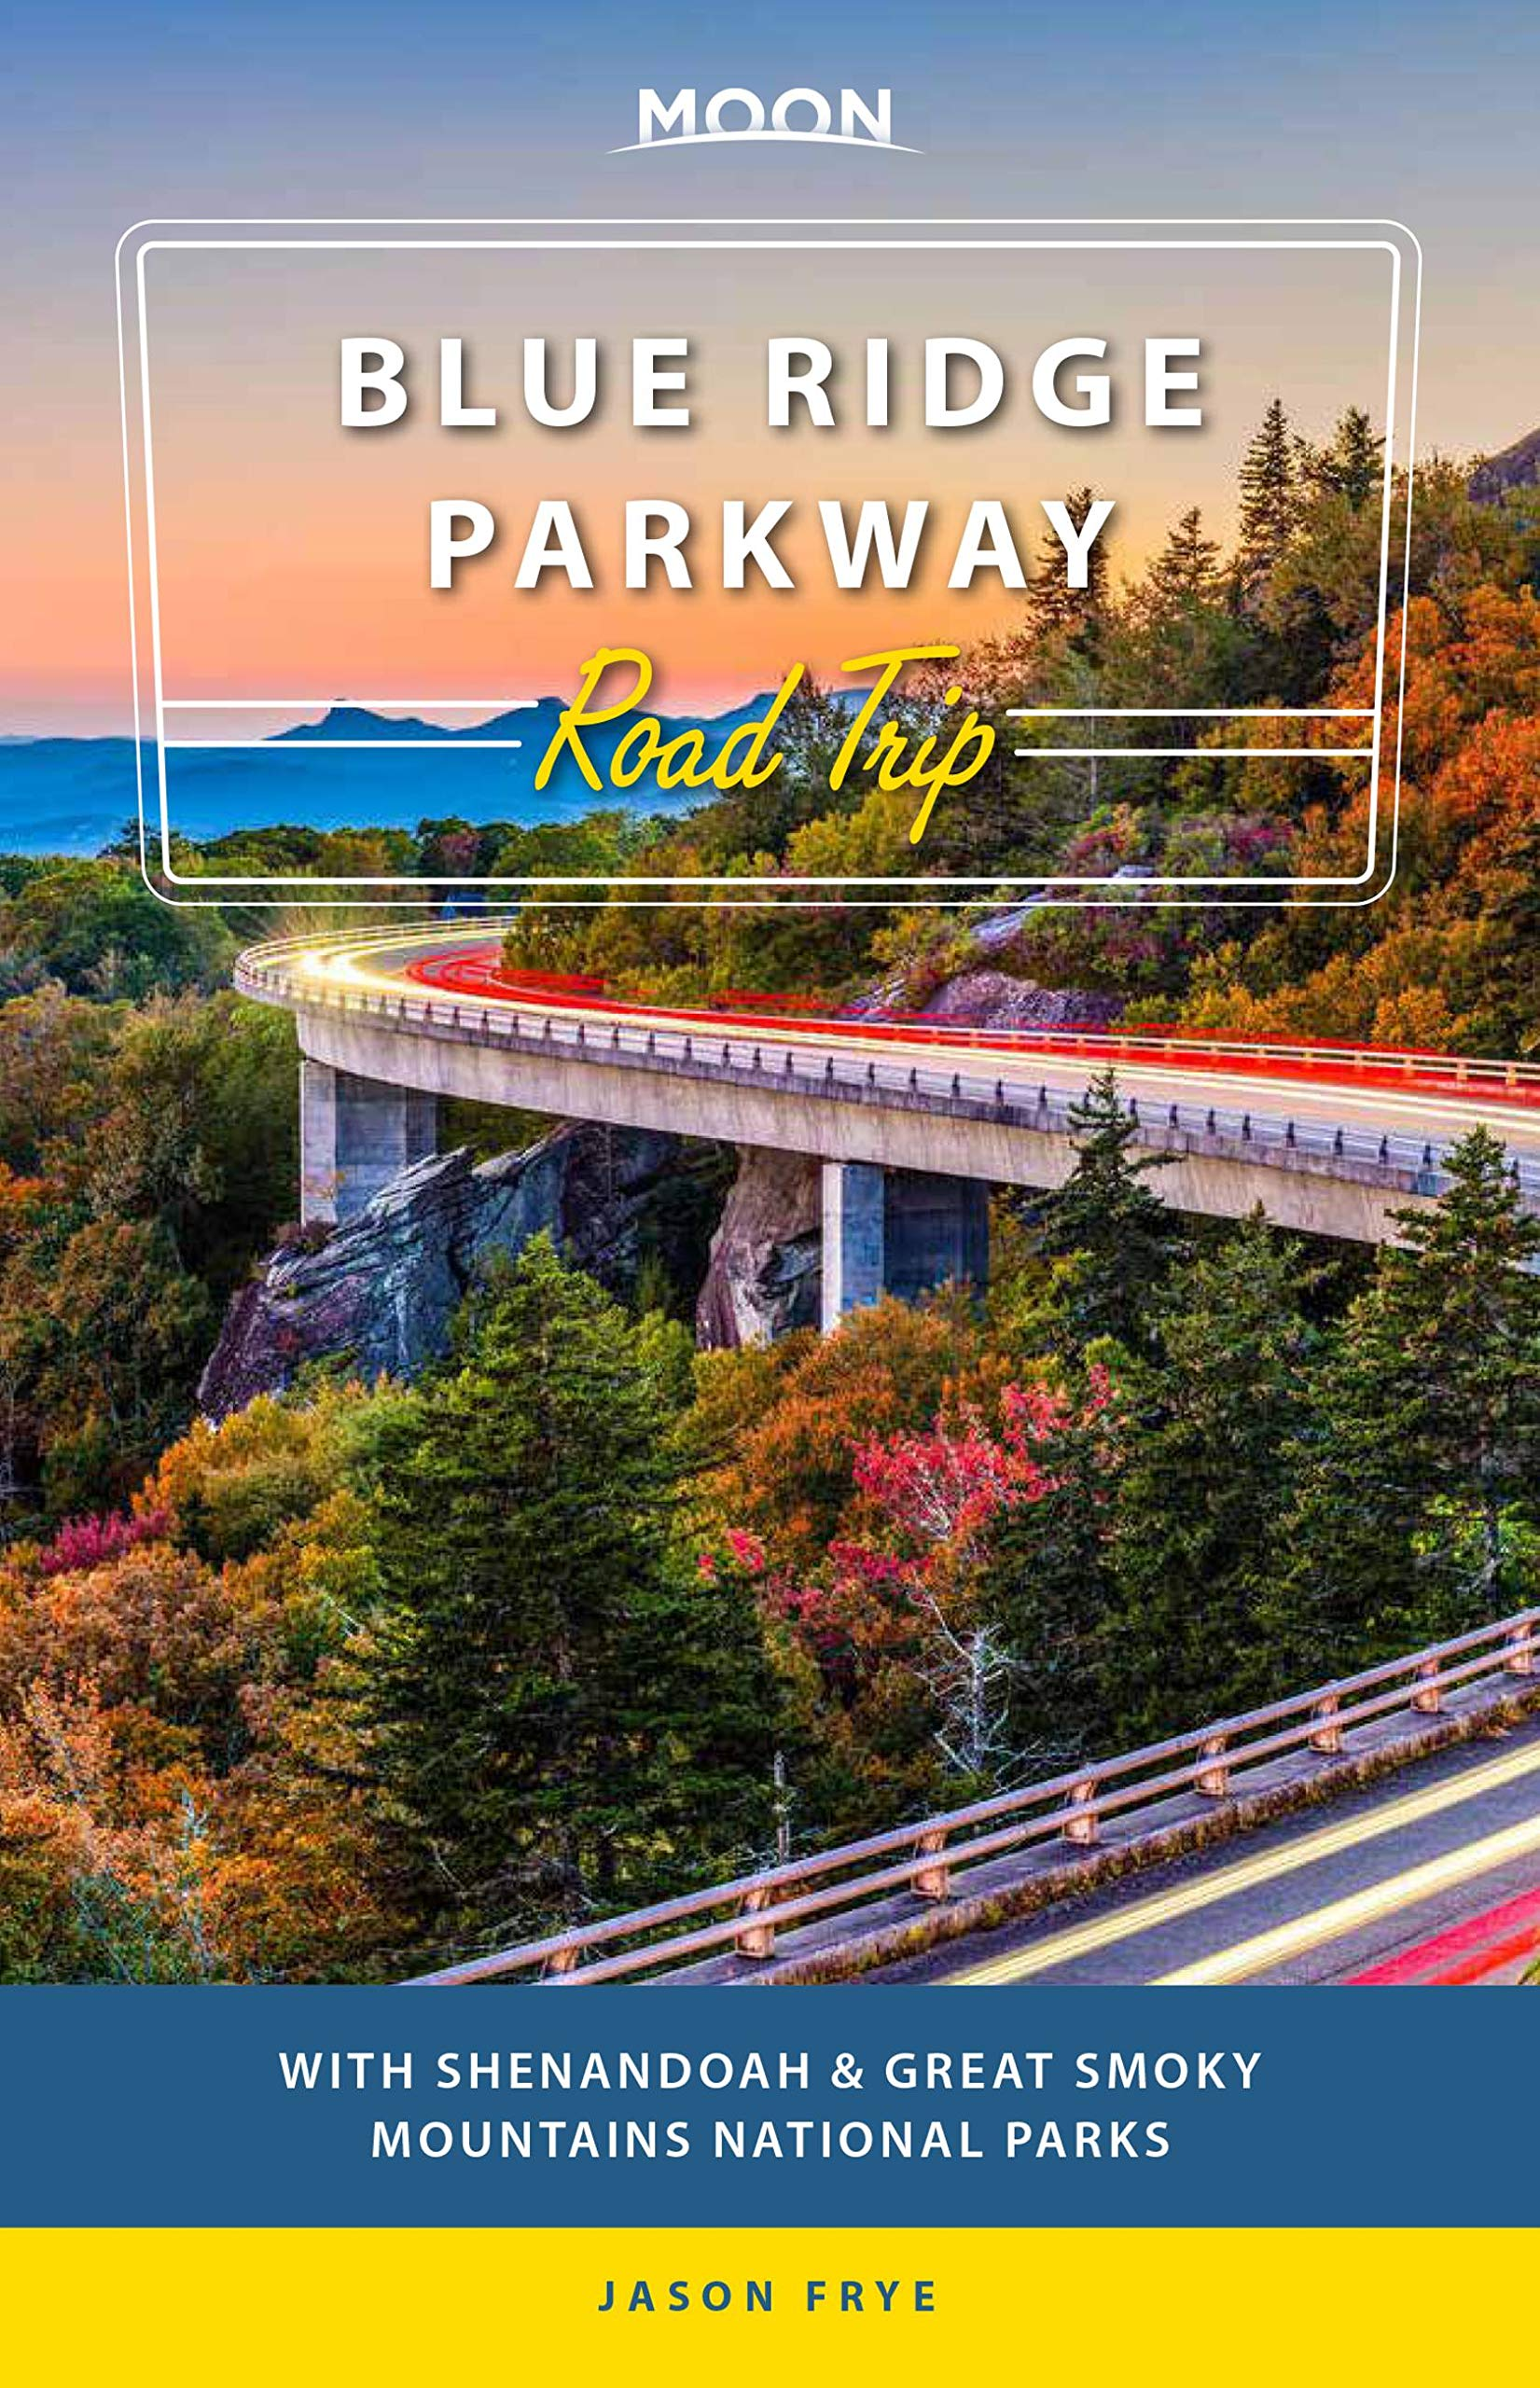 Image for Moon Blue Ridge Parkway Road Trip: With Shenandoah & Great Smoky Mountains National Parks (Travel Guide)